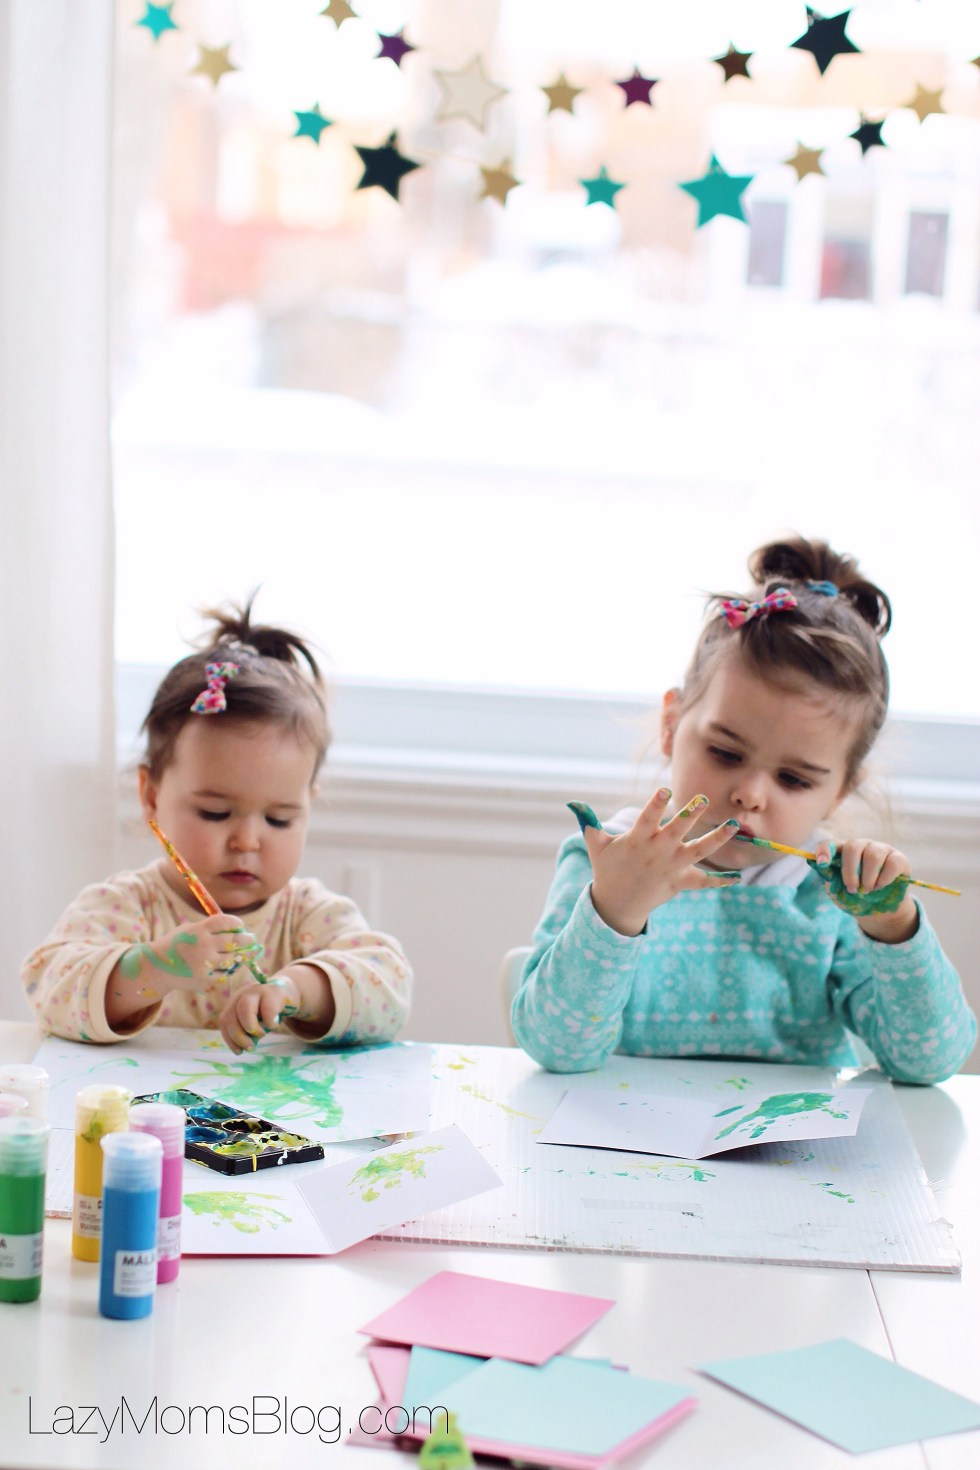 So it may be that without realizing it, we actually raise overstimulated kids . The lack of free, unstructured time can actually cause irritability, and inability to focus, sit still and play for hours with the same toy. Here are some great tips what to do to avoid that!